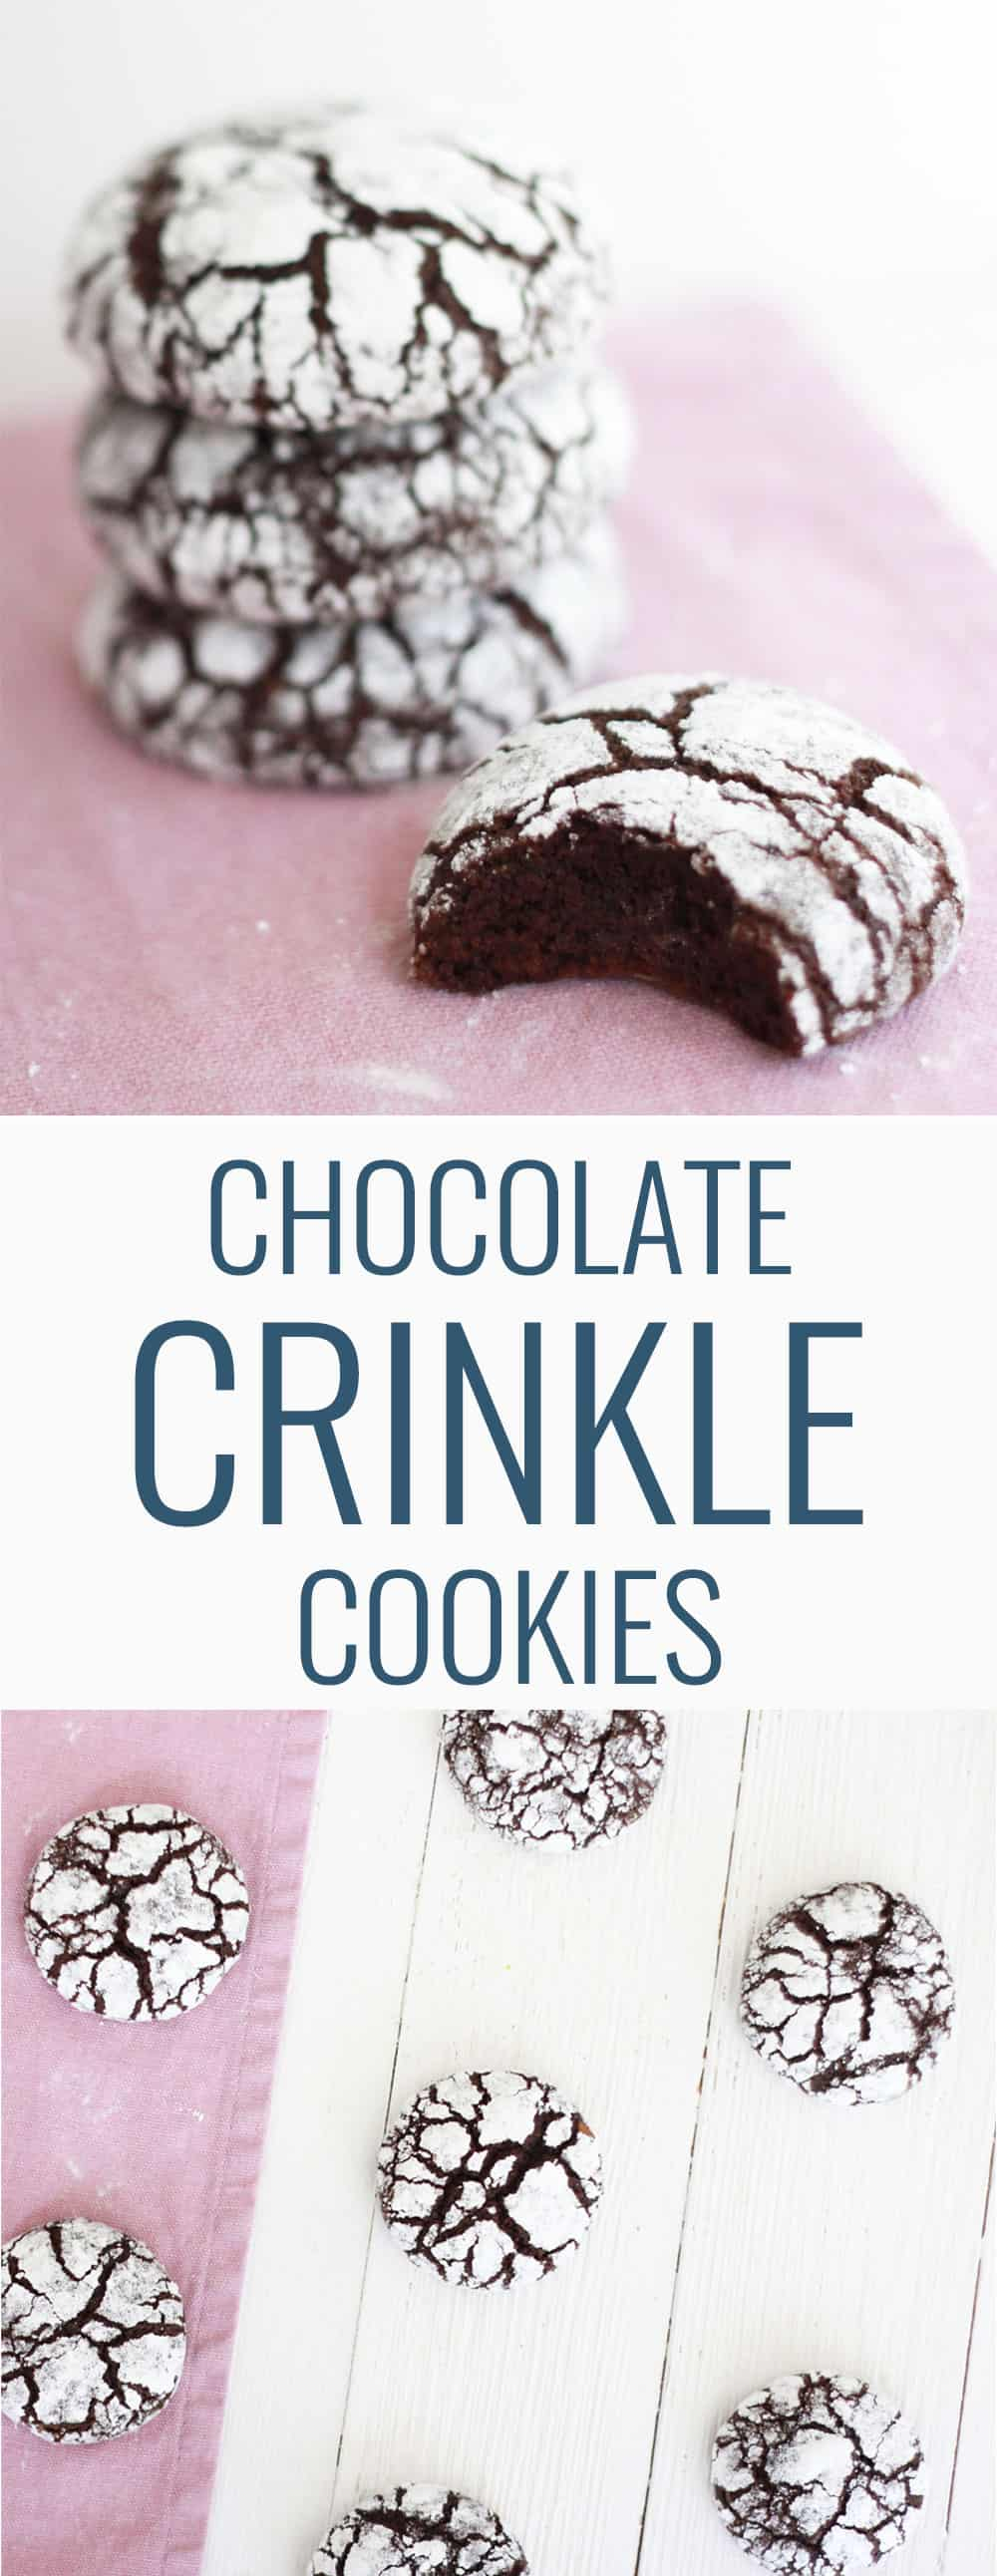 These chocolate crinkle cookies are rich, fudgy and covered in powdered sugar! What's not to LOVE?!